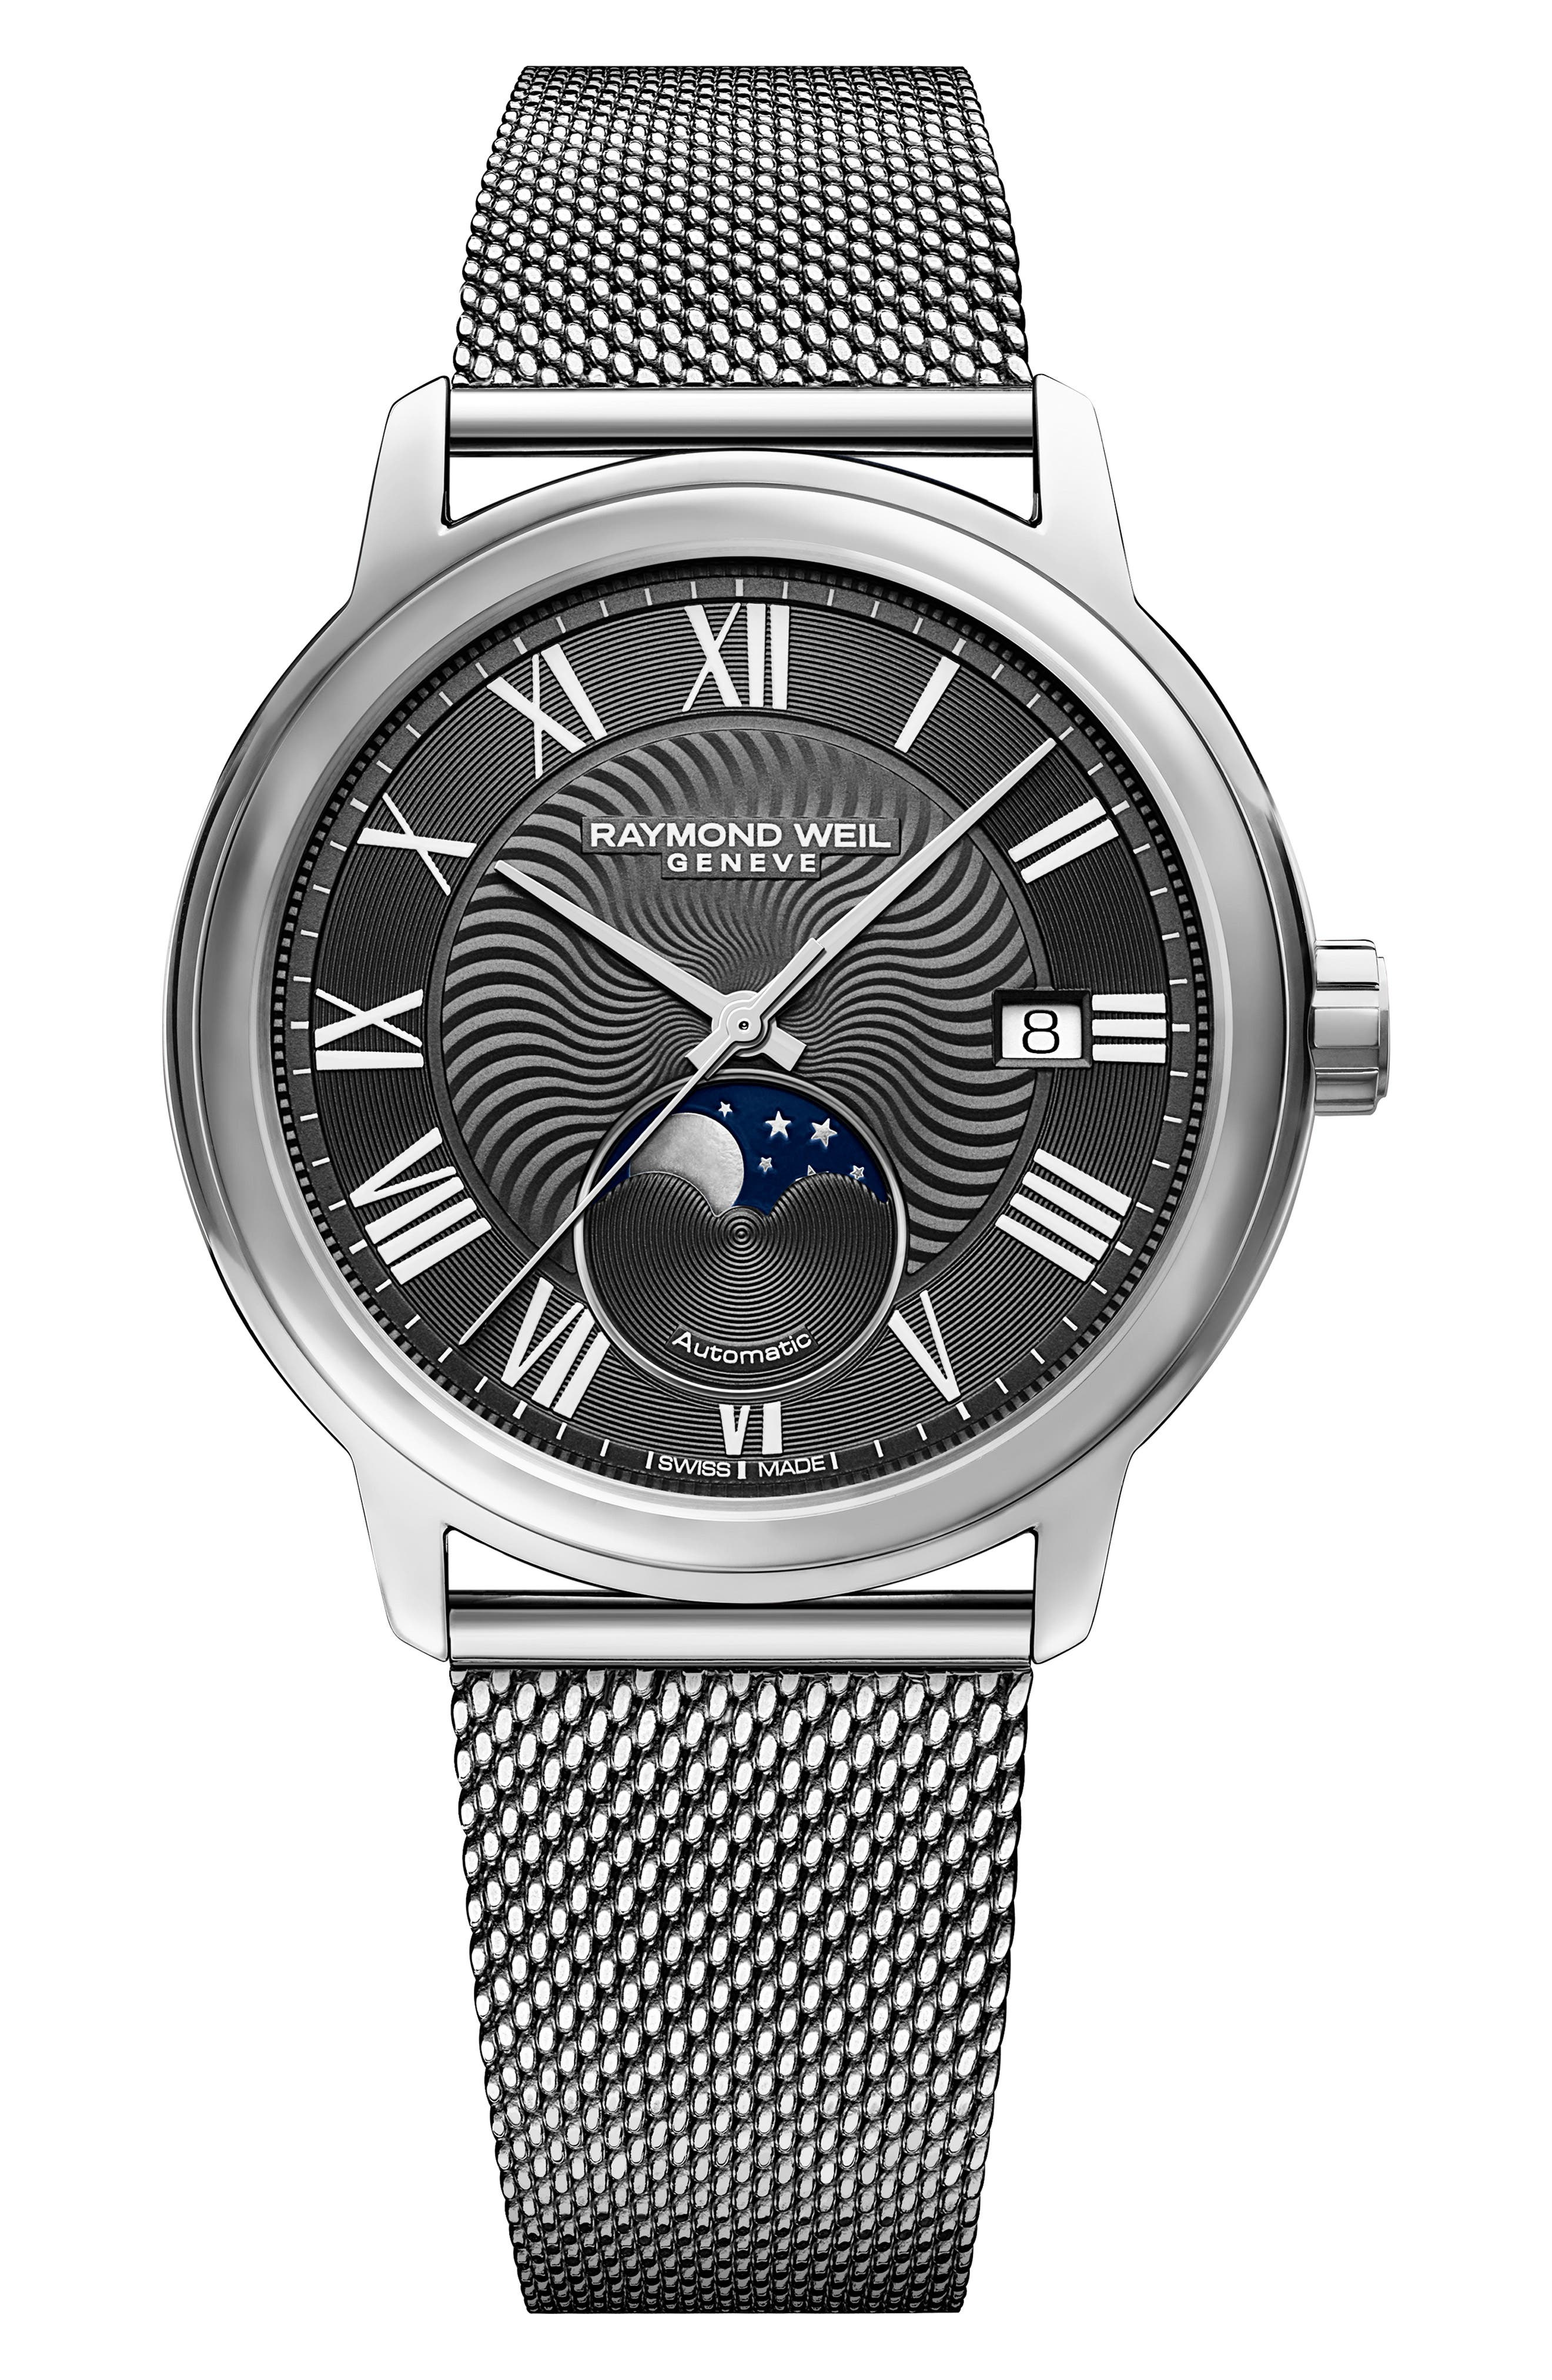 RAYMOND WEIL MAESTRO MOON PHASE AUTOMATIC MESH STRAP WATCH, 40MM